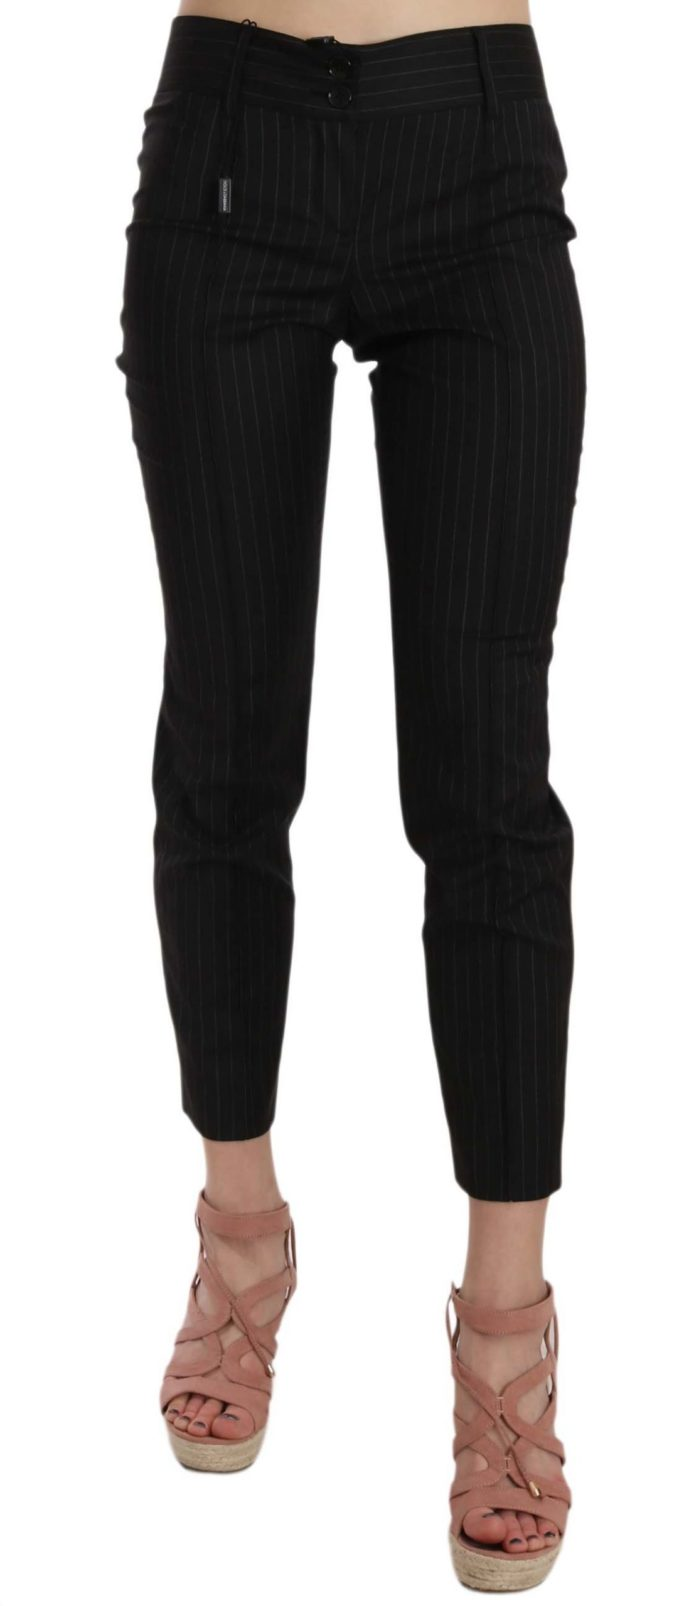 658503 Black Wool Skinny Striped Pinstripe Pants.jpg